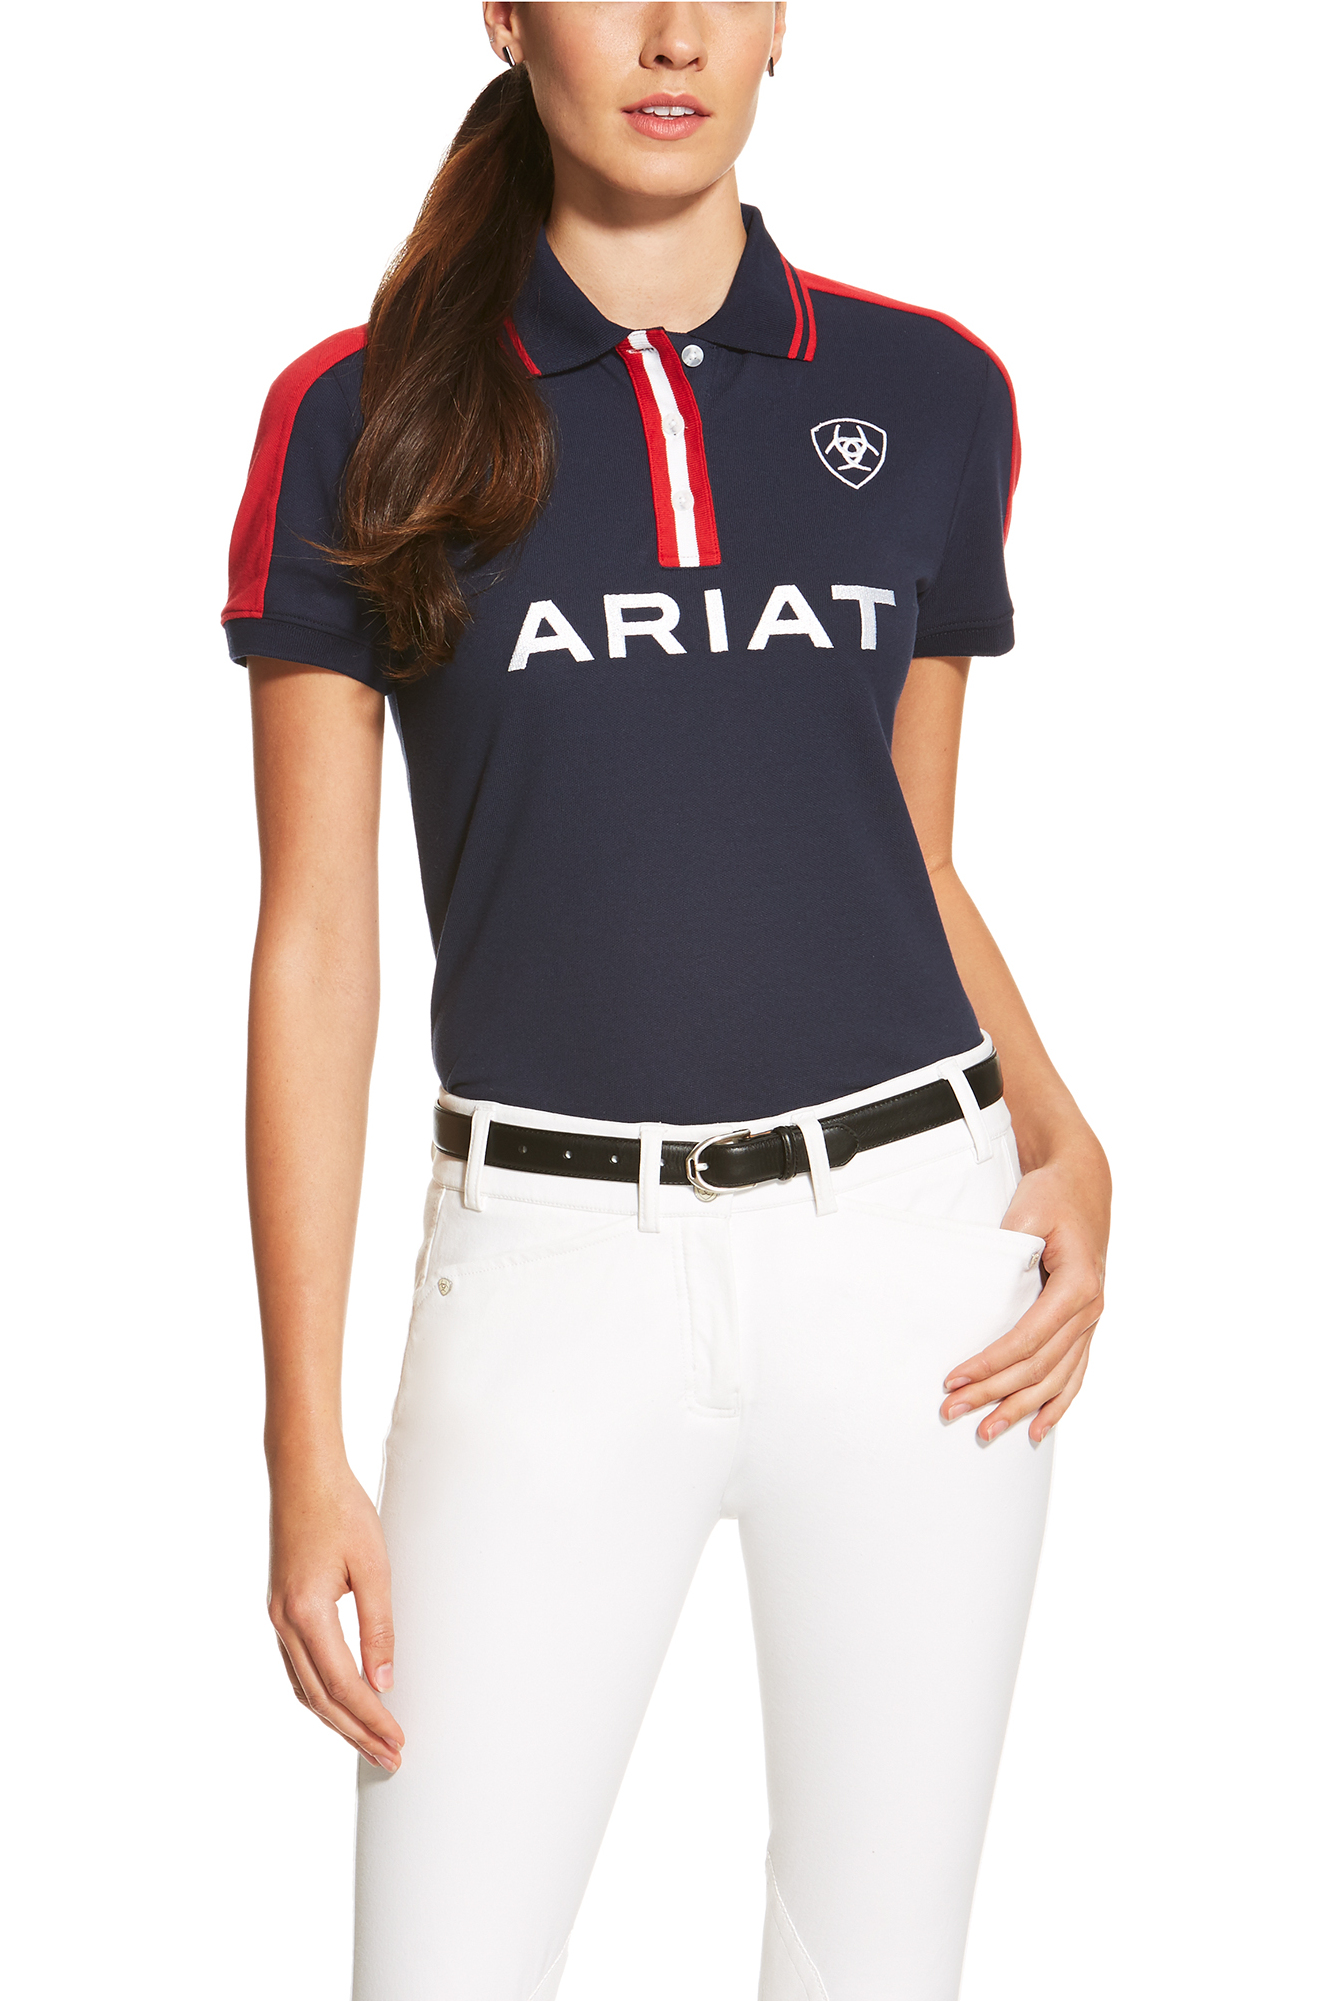 Ariat Womens New Team Polo Shirt Navy The Drillshed